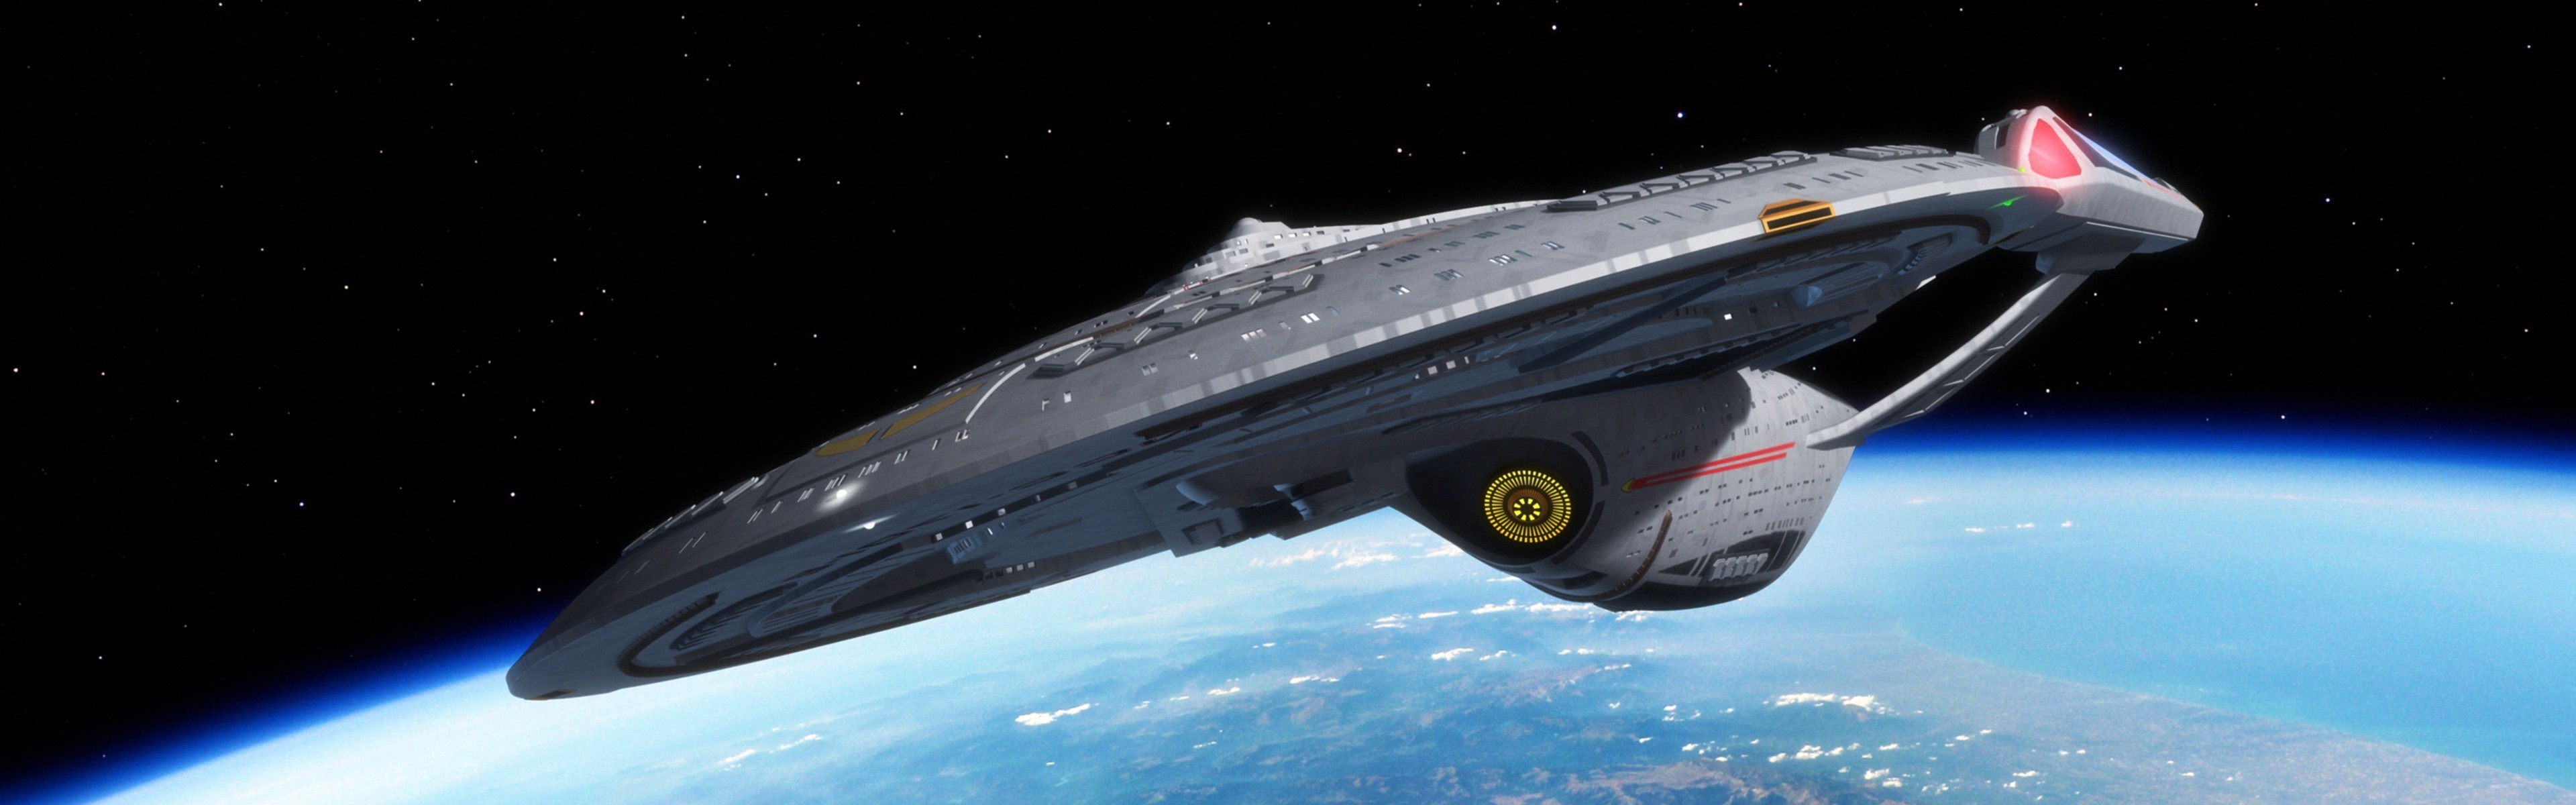 3840x1200 Star Trek, USS Enterprise (spaceship), Space, Multiple Display Wallpapers  HD / Desktop and Mobile Backgrounds